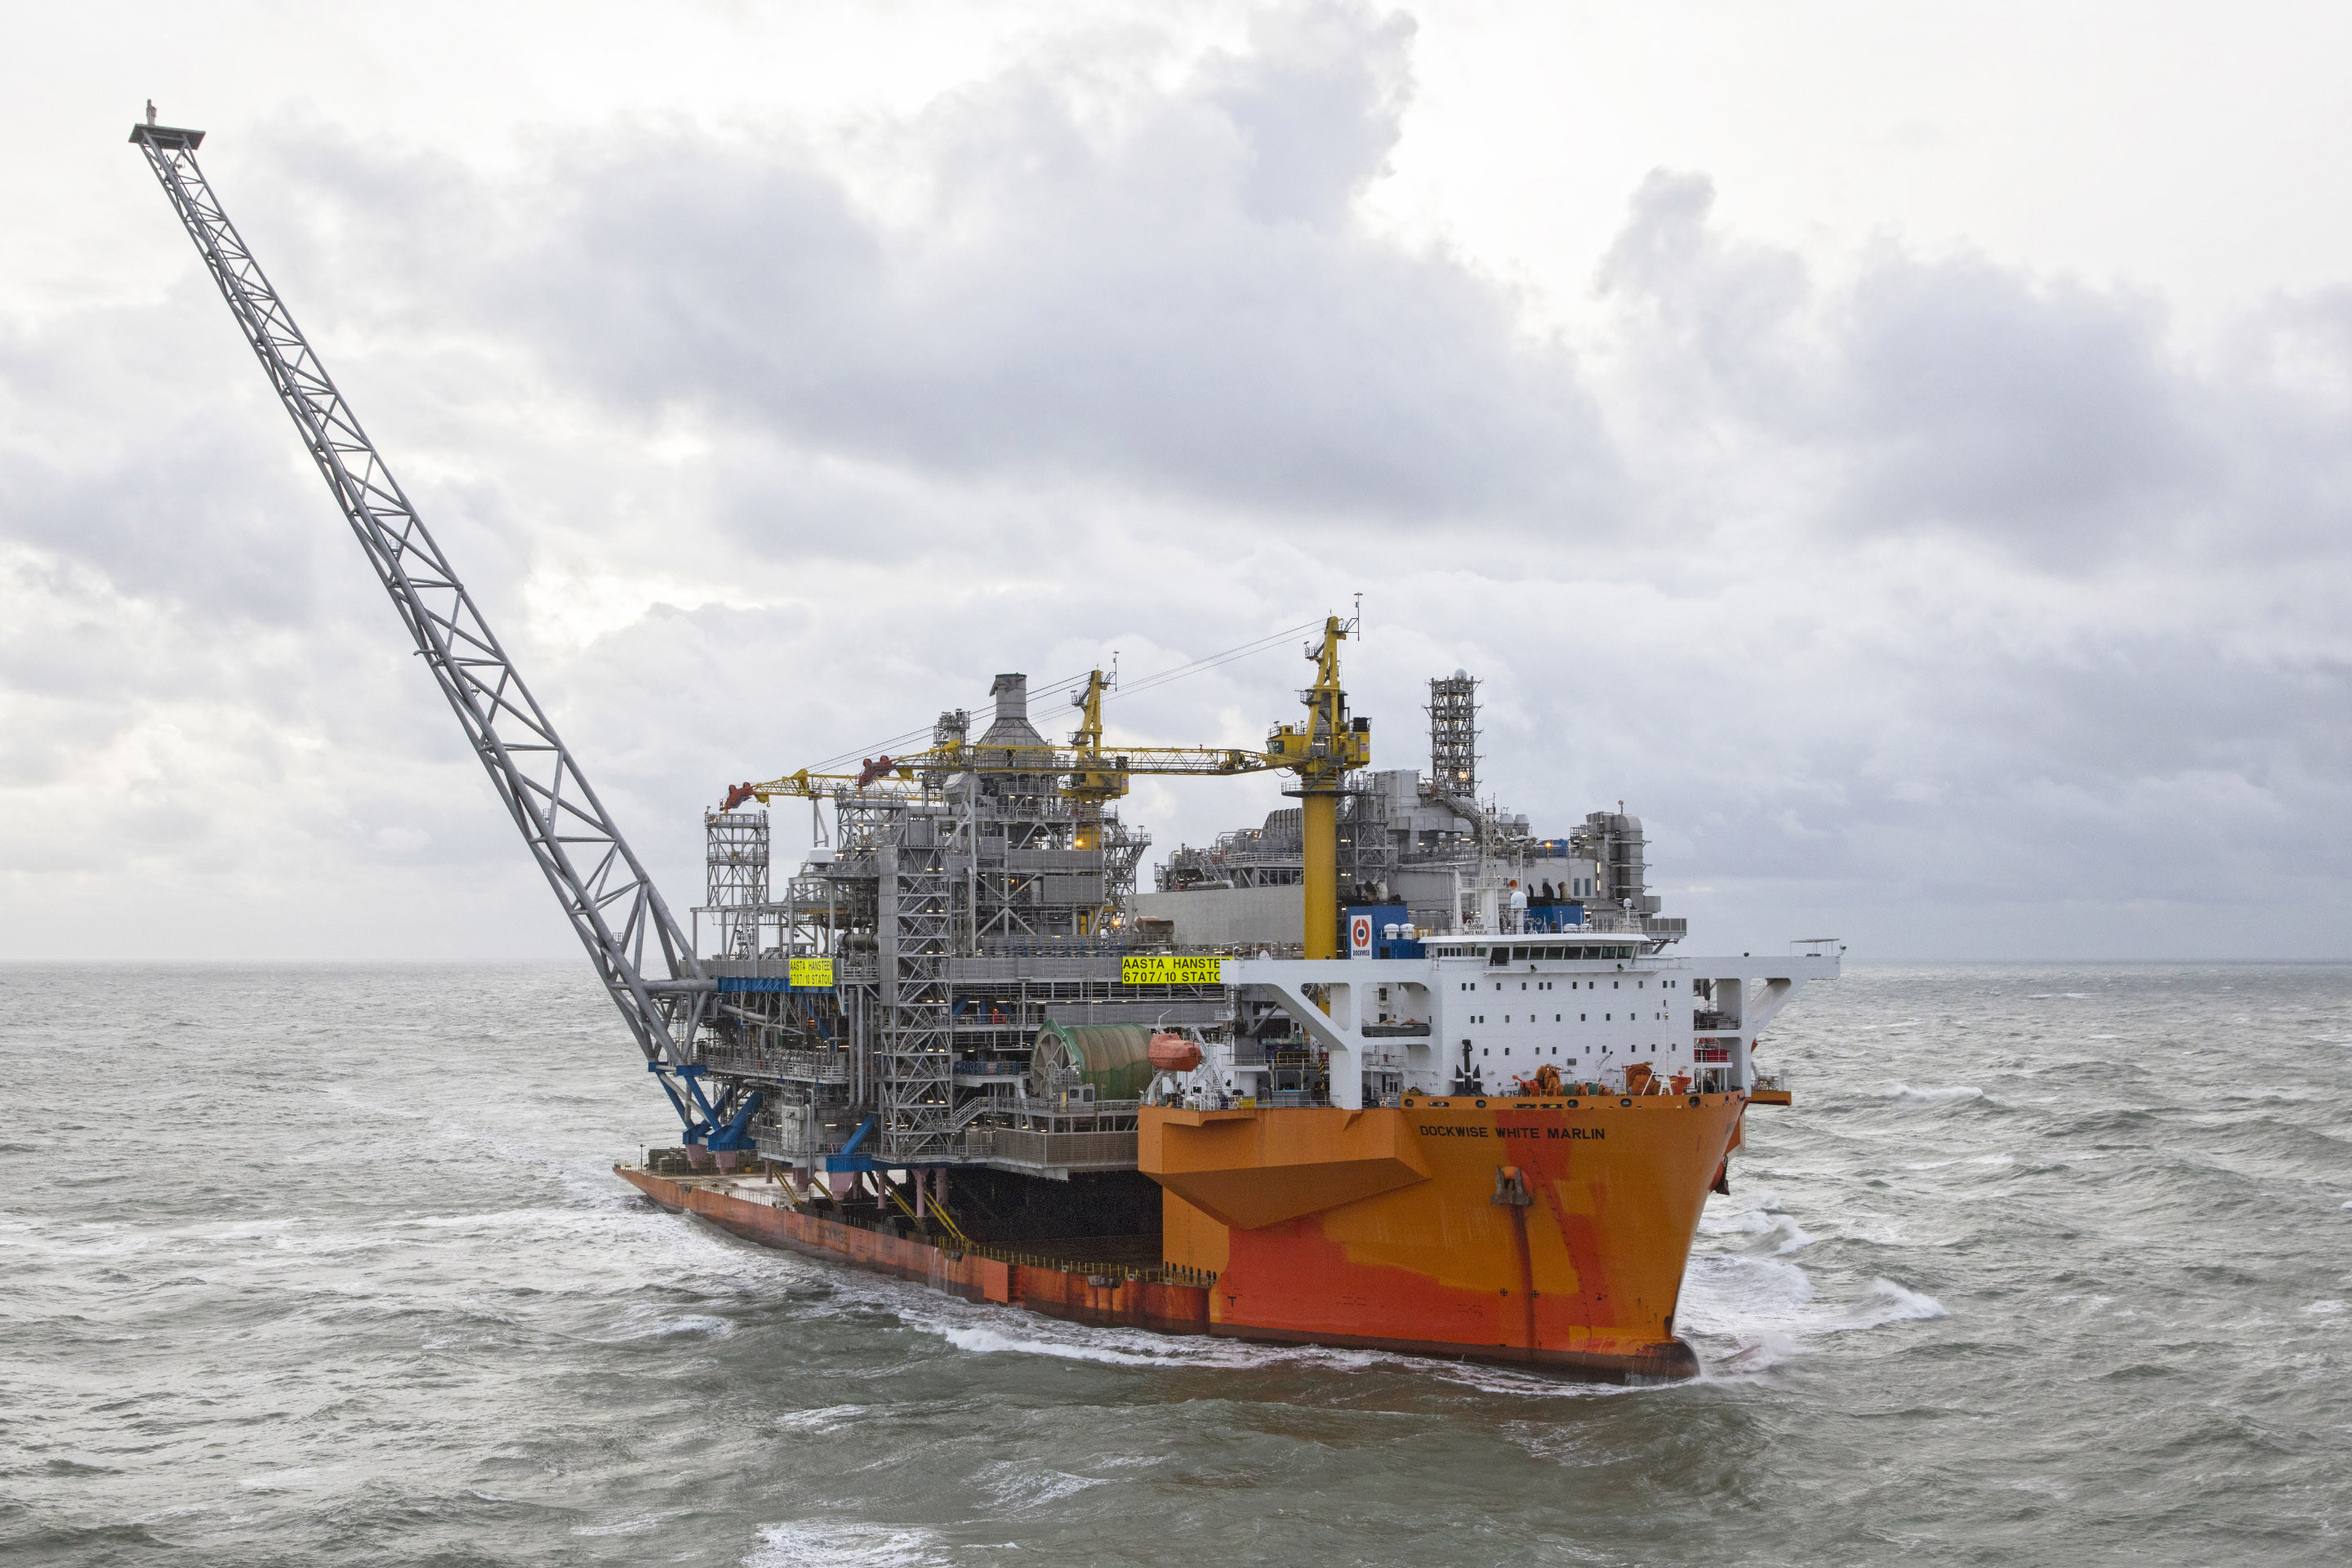 Transport of the Aasta Hansteen platform topside by the White Marlin